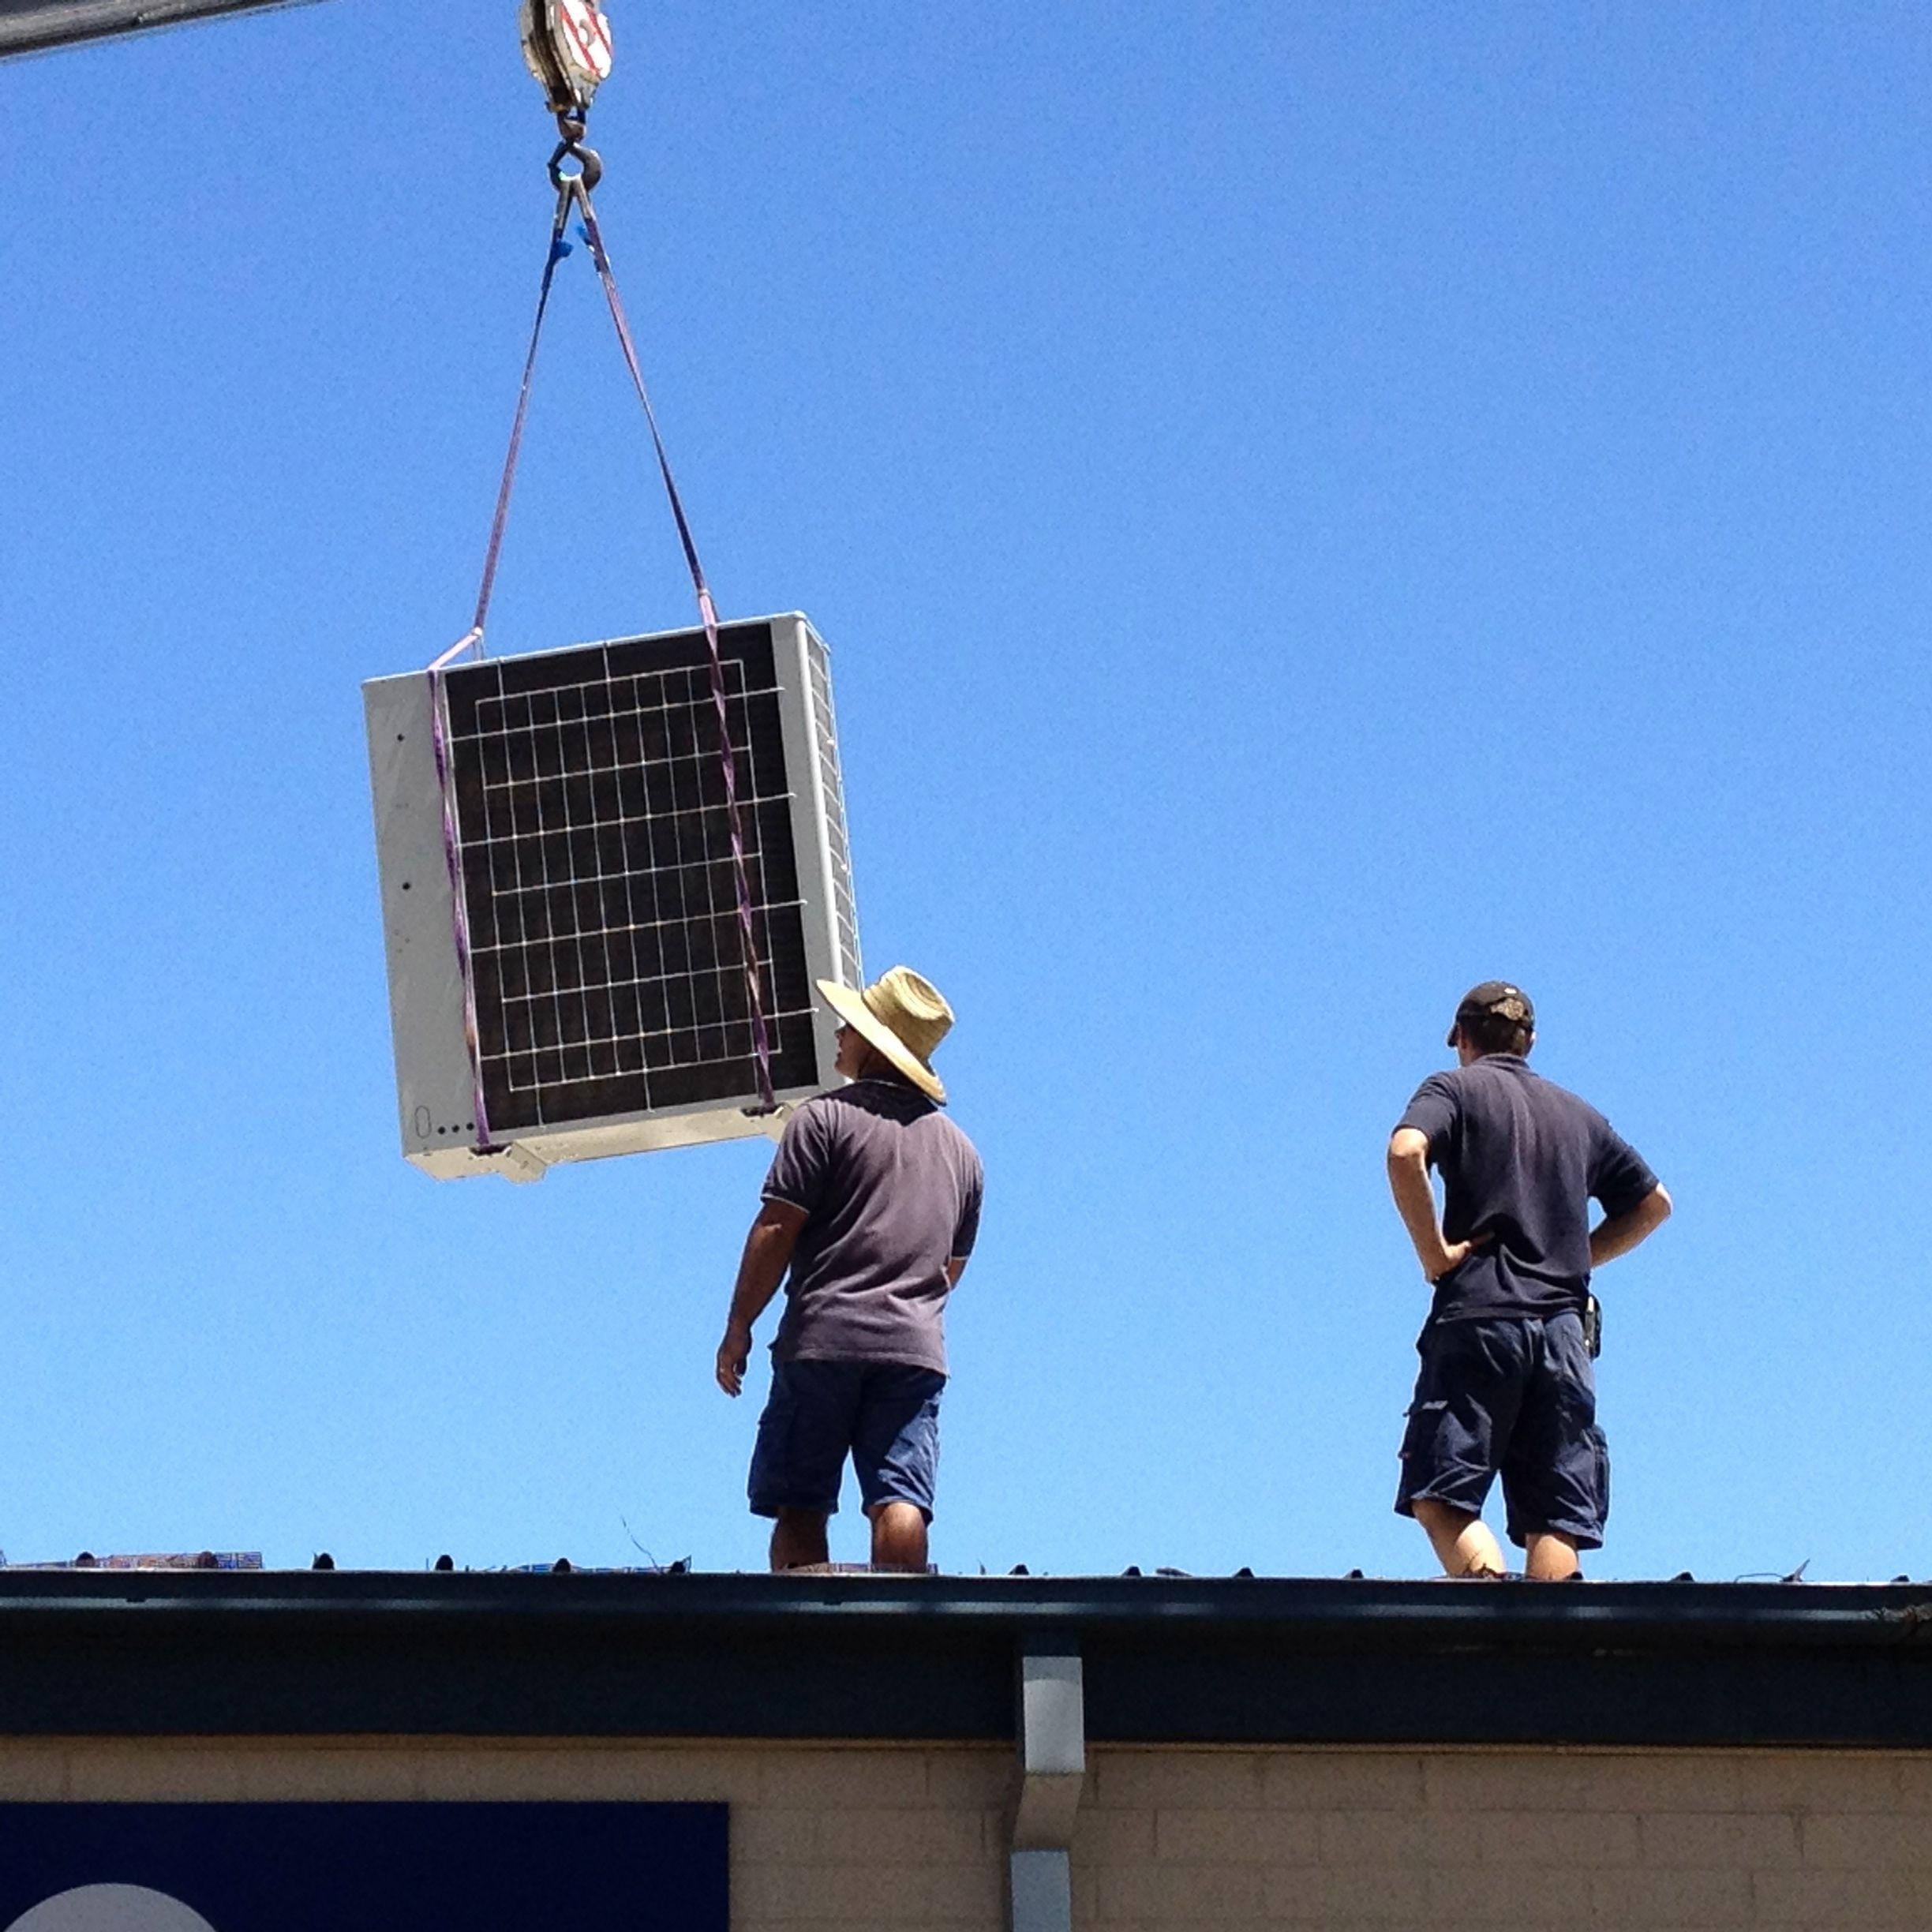 We use CraneWorx to remove old tired systems